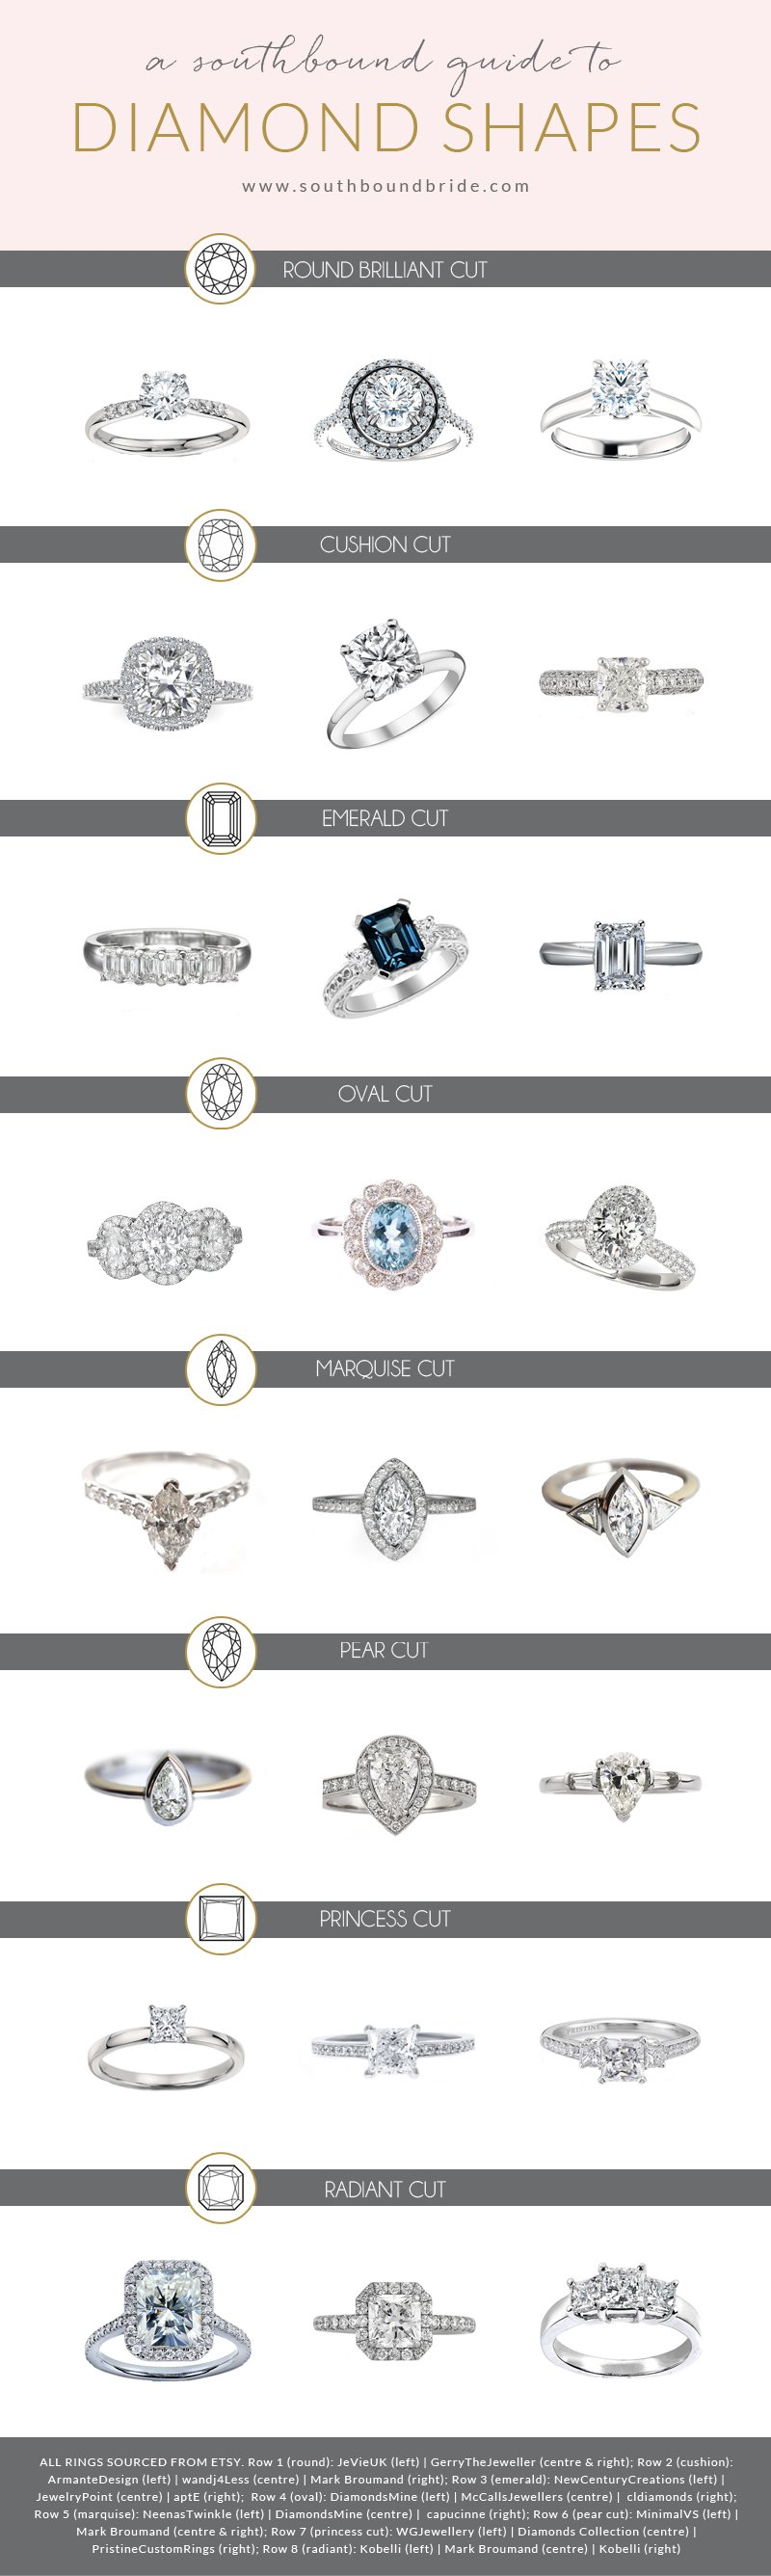 at ways set to on gems different any quick diamond for glance be guide pin accent ring